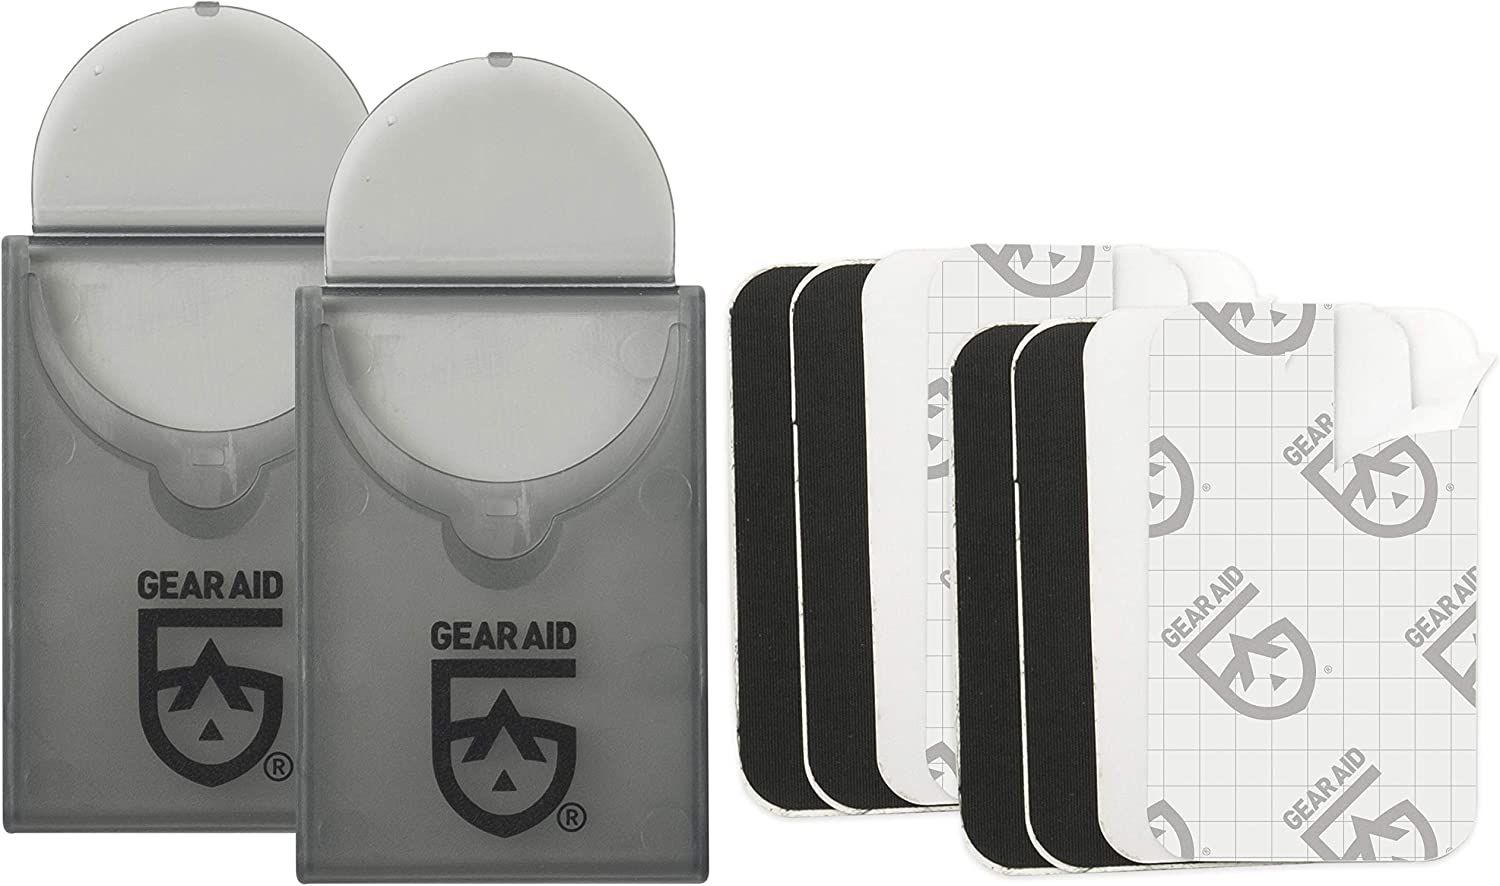 GEAR AID Tenacious Tape Mini Patches to Repair Jackets, Tents and Rain Gear